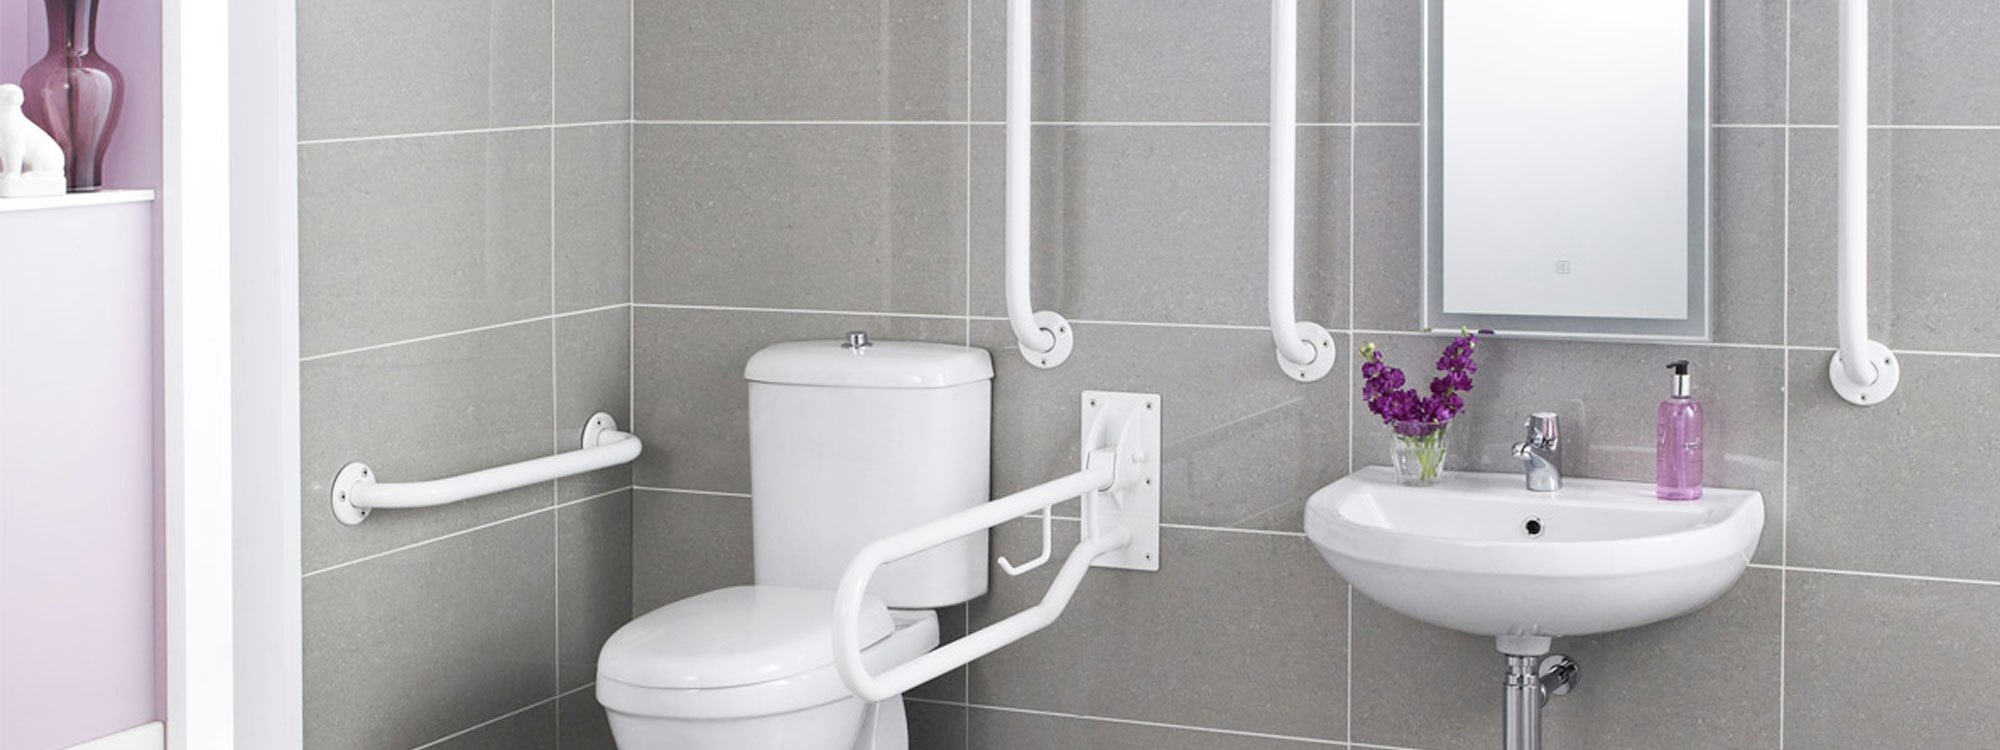 Bathroom Support - Hand & Grab Rails